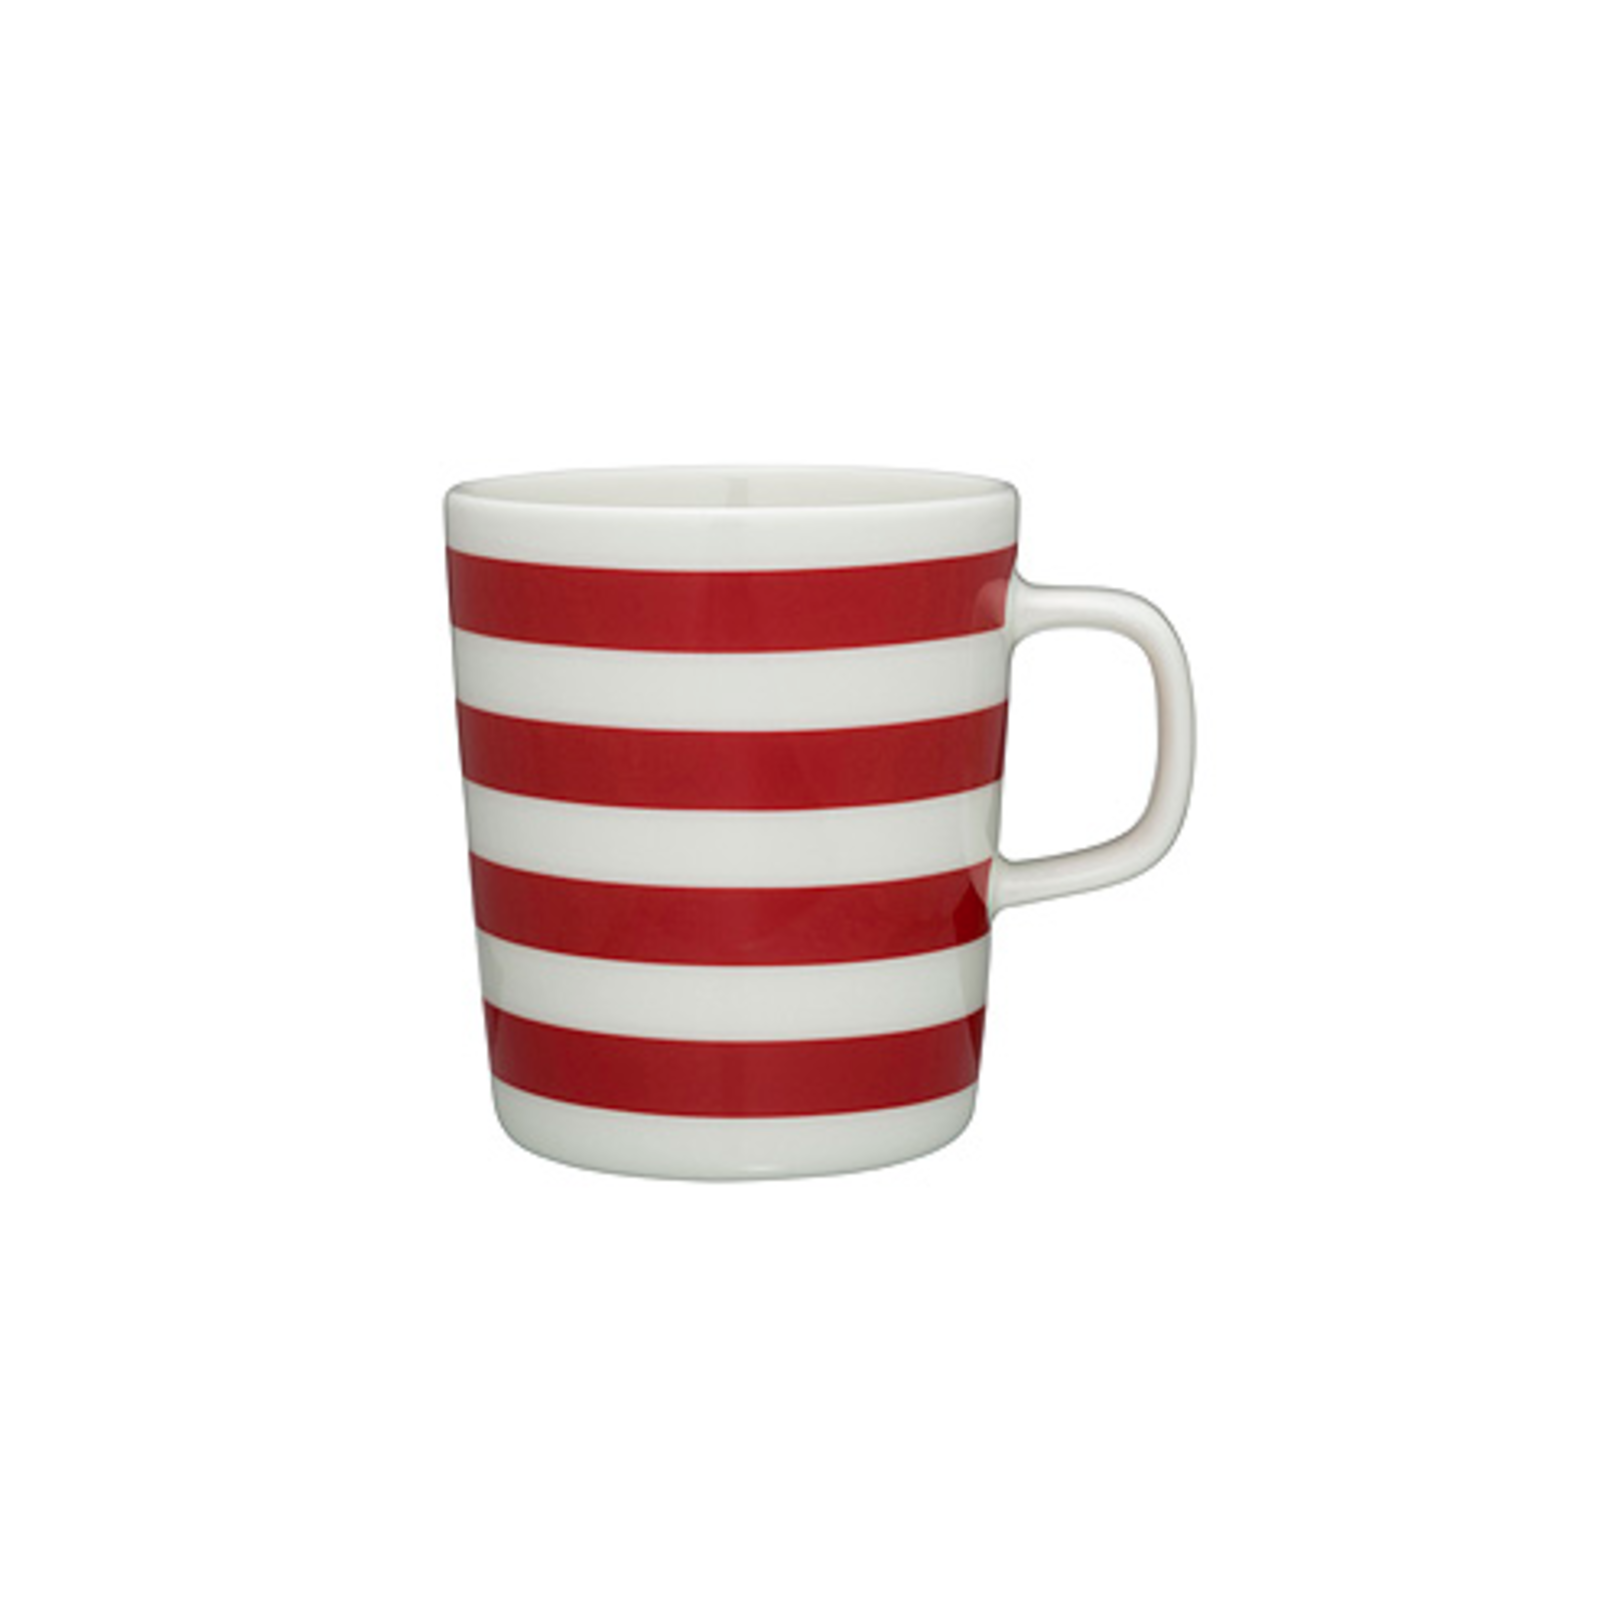 """Sip with Good Company with this mug designed by Sami Ruotsalainen as part of the Oiva dinnerware collection created just for Marimekko. Maybe it's the simple, clean shape or maybe it's the fact that we just can't stop thinking about peppermint candy canes. Mix and match with other cups in the collection for a medley of flavors.  Search """"jansen co my mug espresso saucer"""" from We Wish You a Marimekko Christmas"""